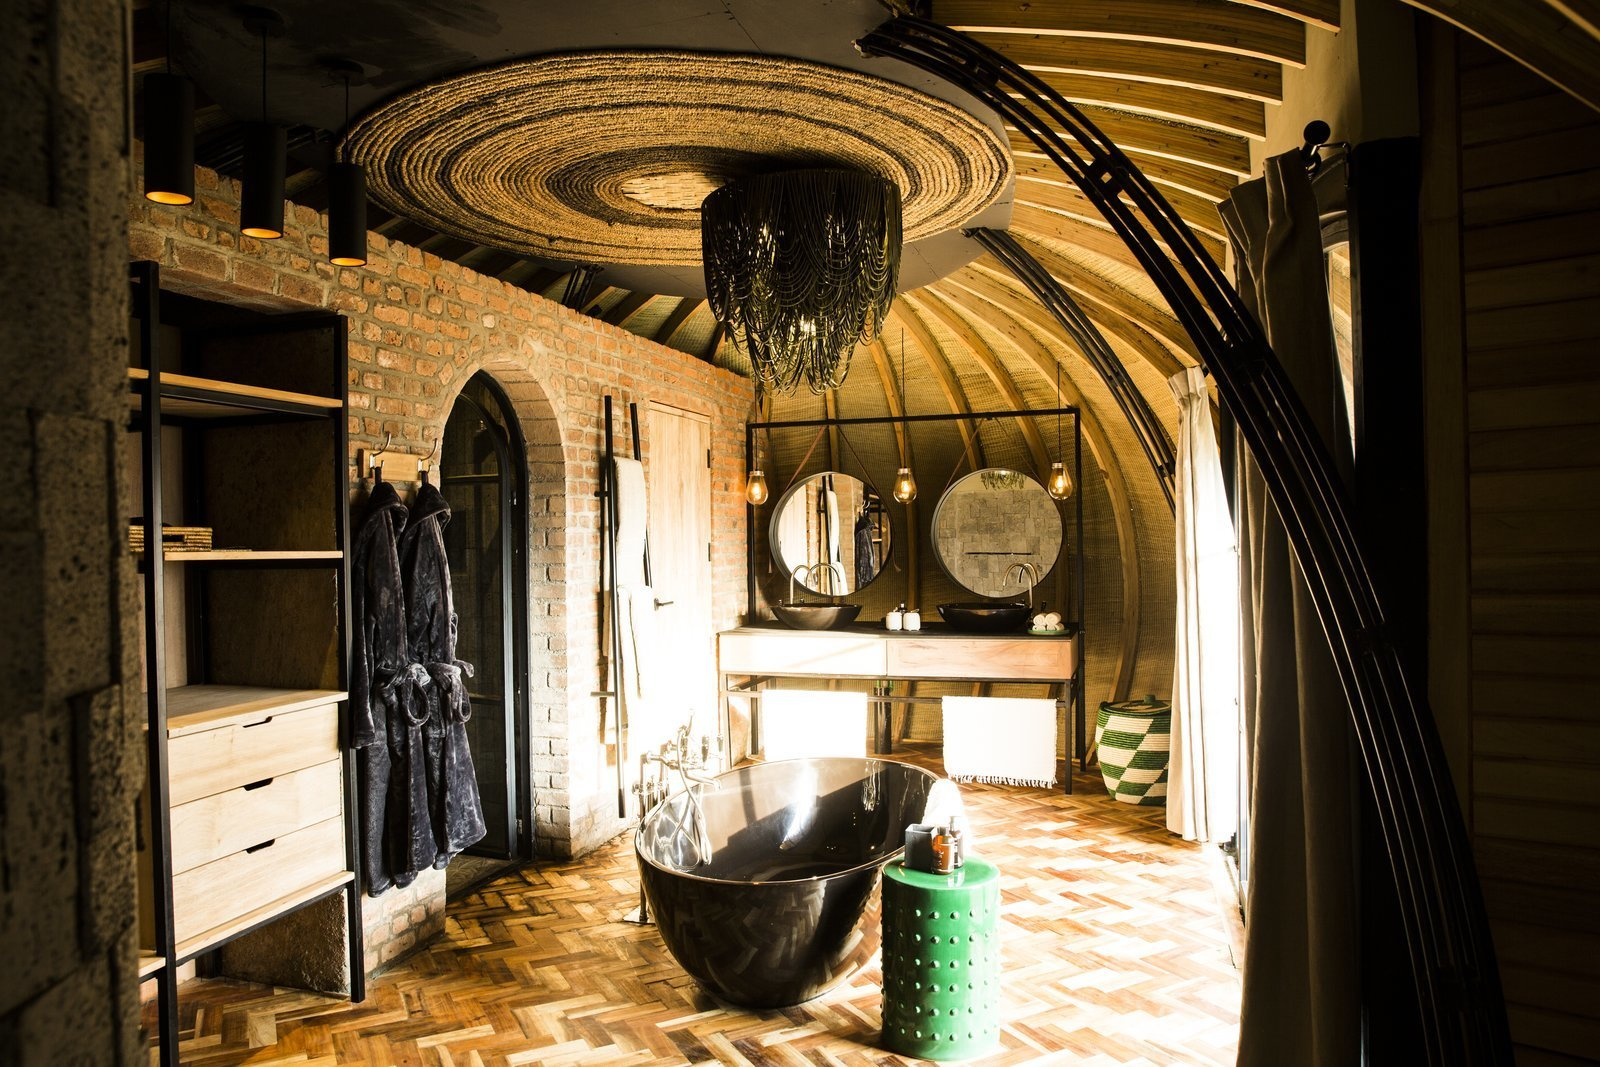 Bathroom interiors  Photo 5 of 11 in Take an Eco-Escape to a Spherical Forest Villa in an Eroded Volcanic Cone in Rwanda